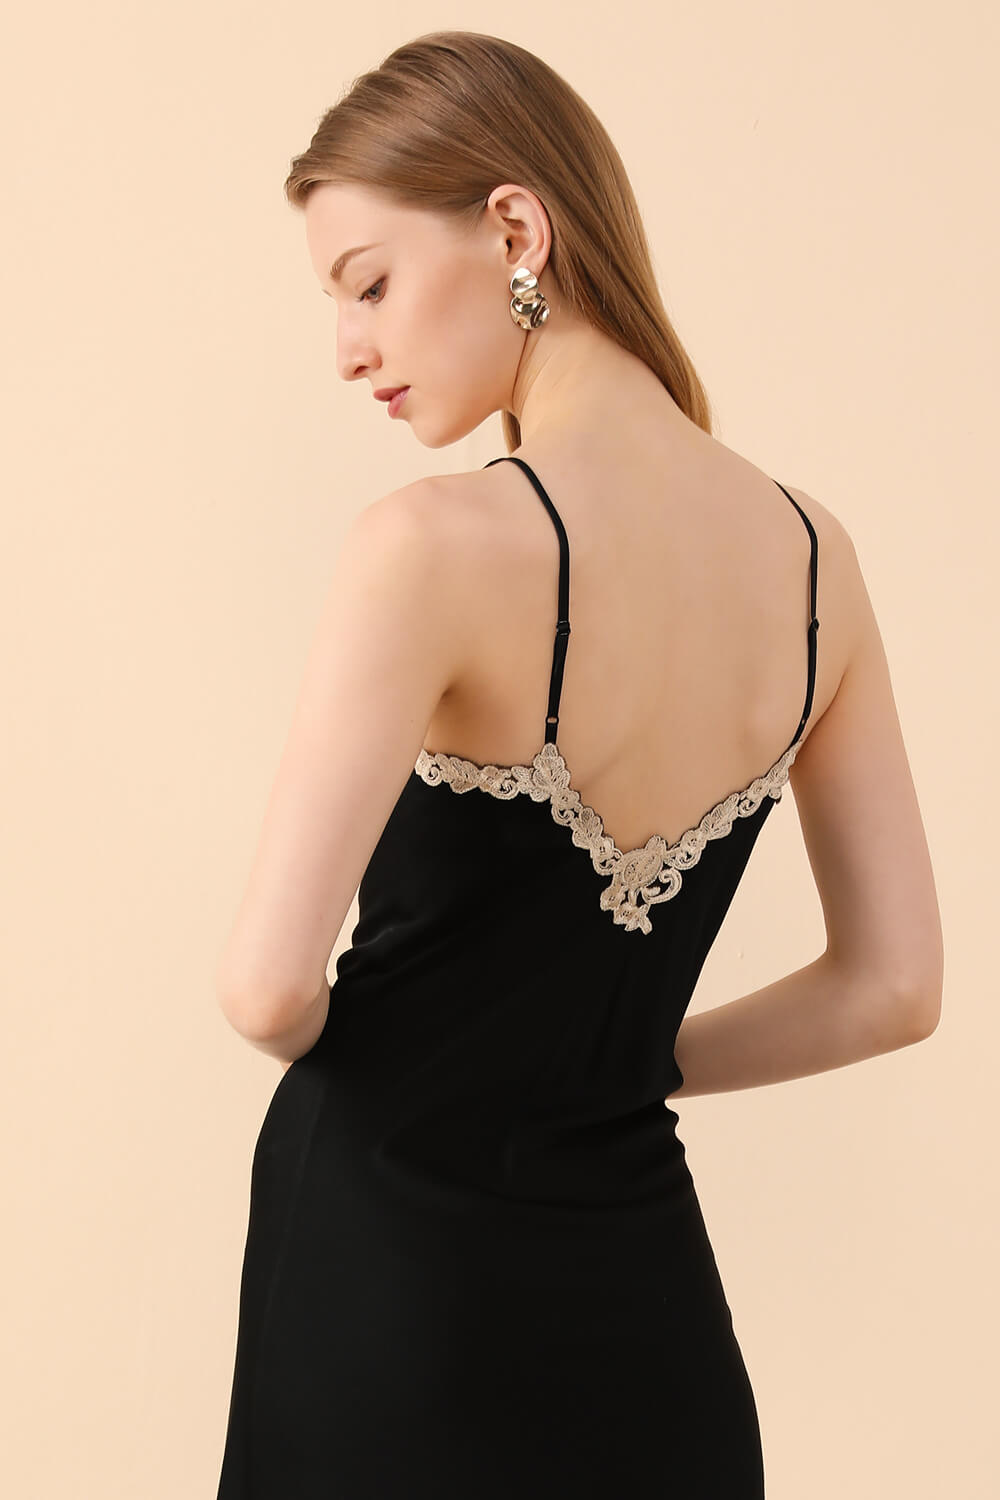 Black Silk Nightgown with Embroidered Motifs - BASK ™